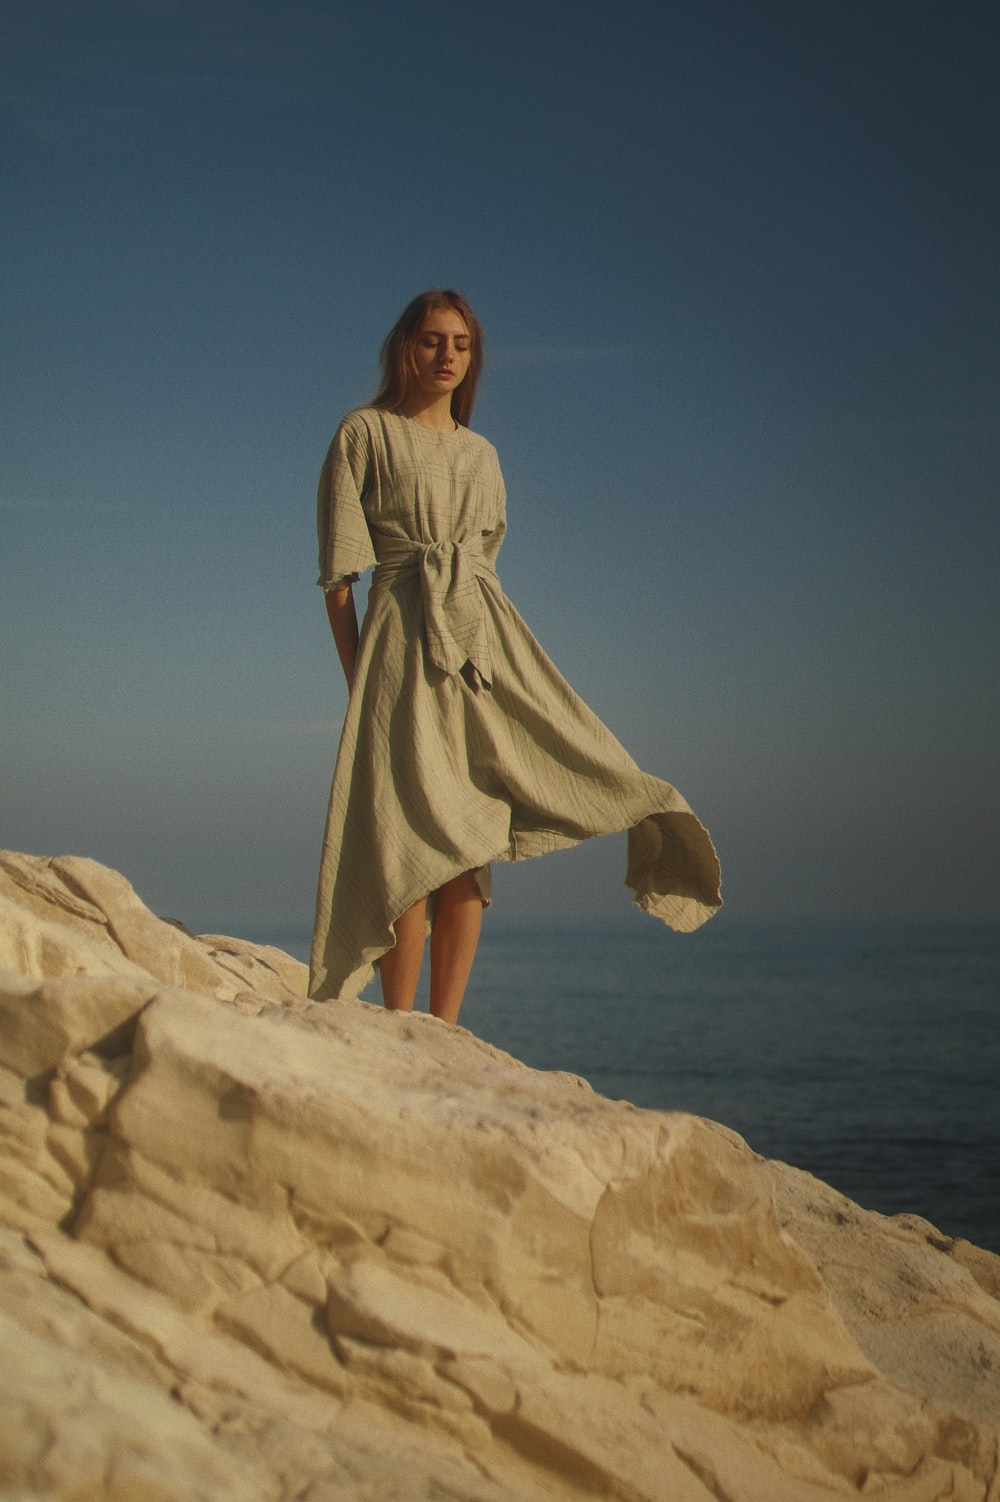 woman in brown dress standing on brown rock formation during daytime